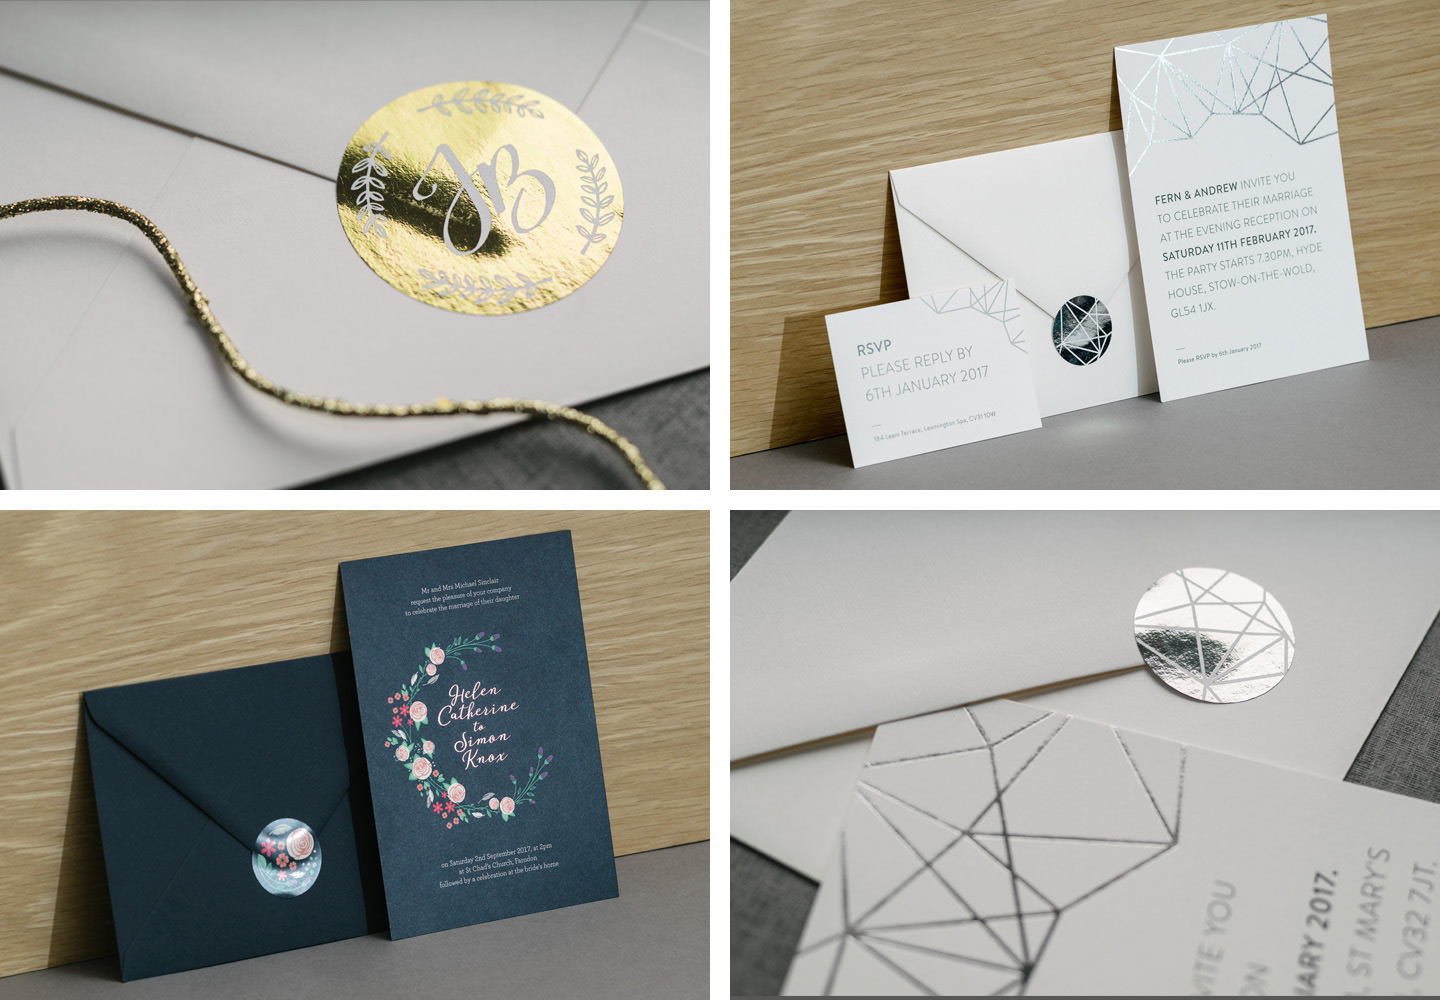 Buy Wedding Invitations Online Uk: 4 Ideas To Make Your Wedding Invitation Envelopes Extra